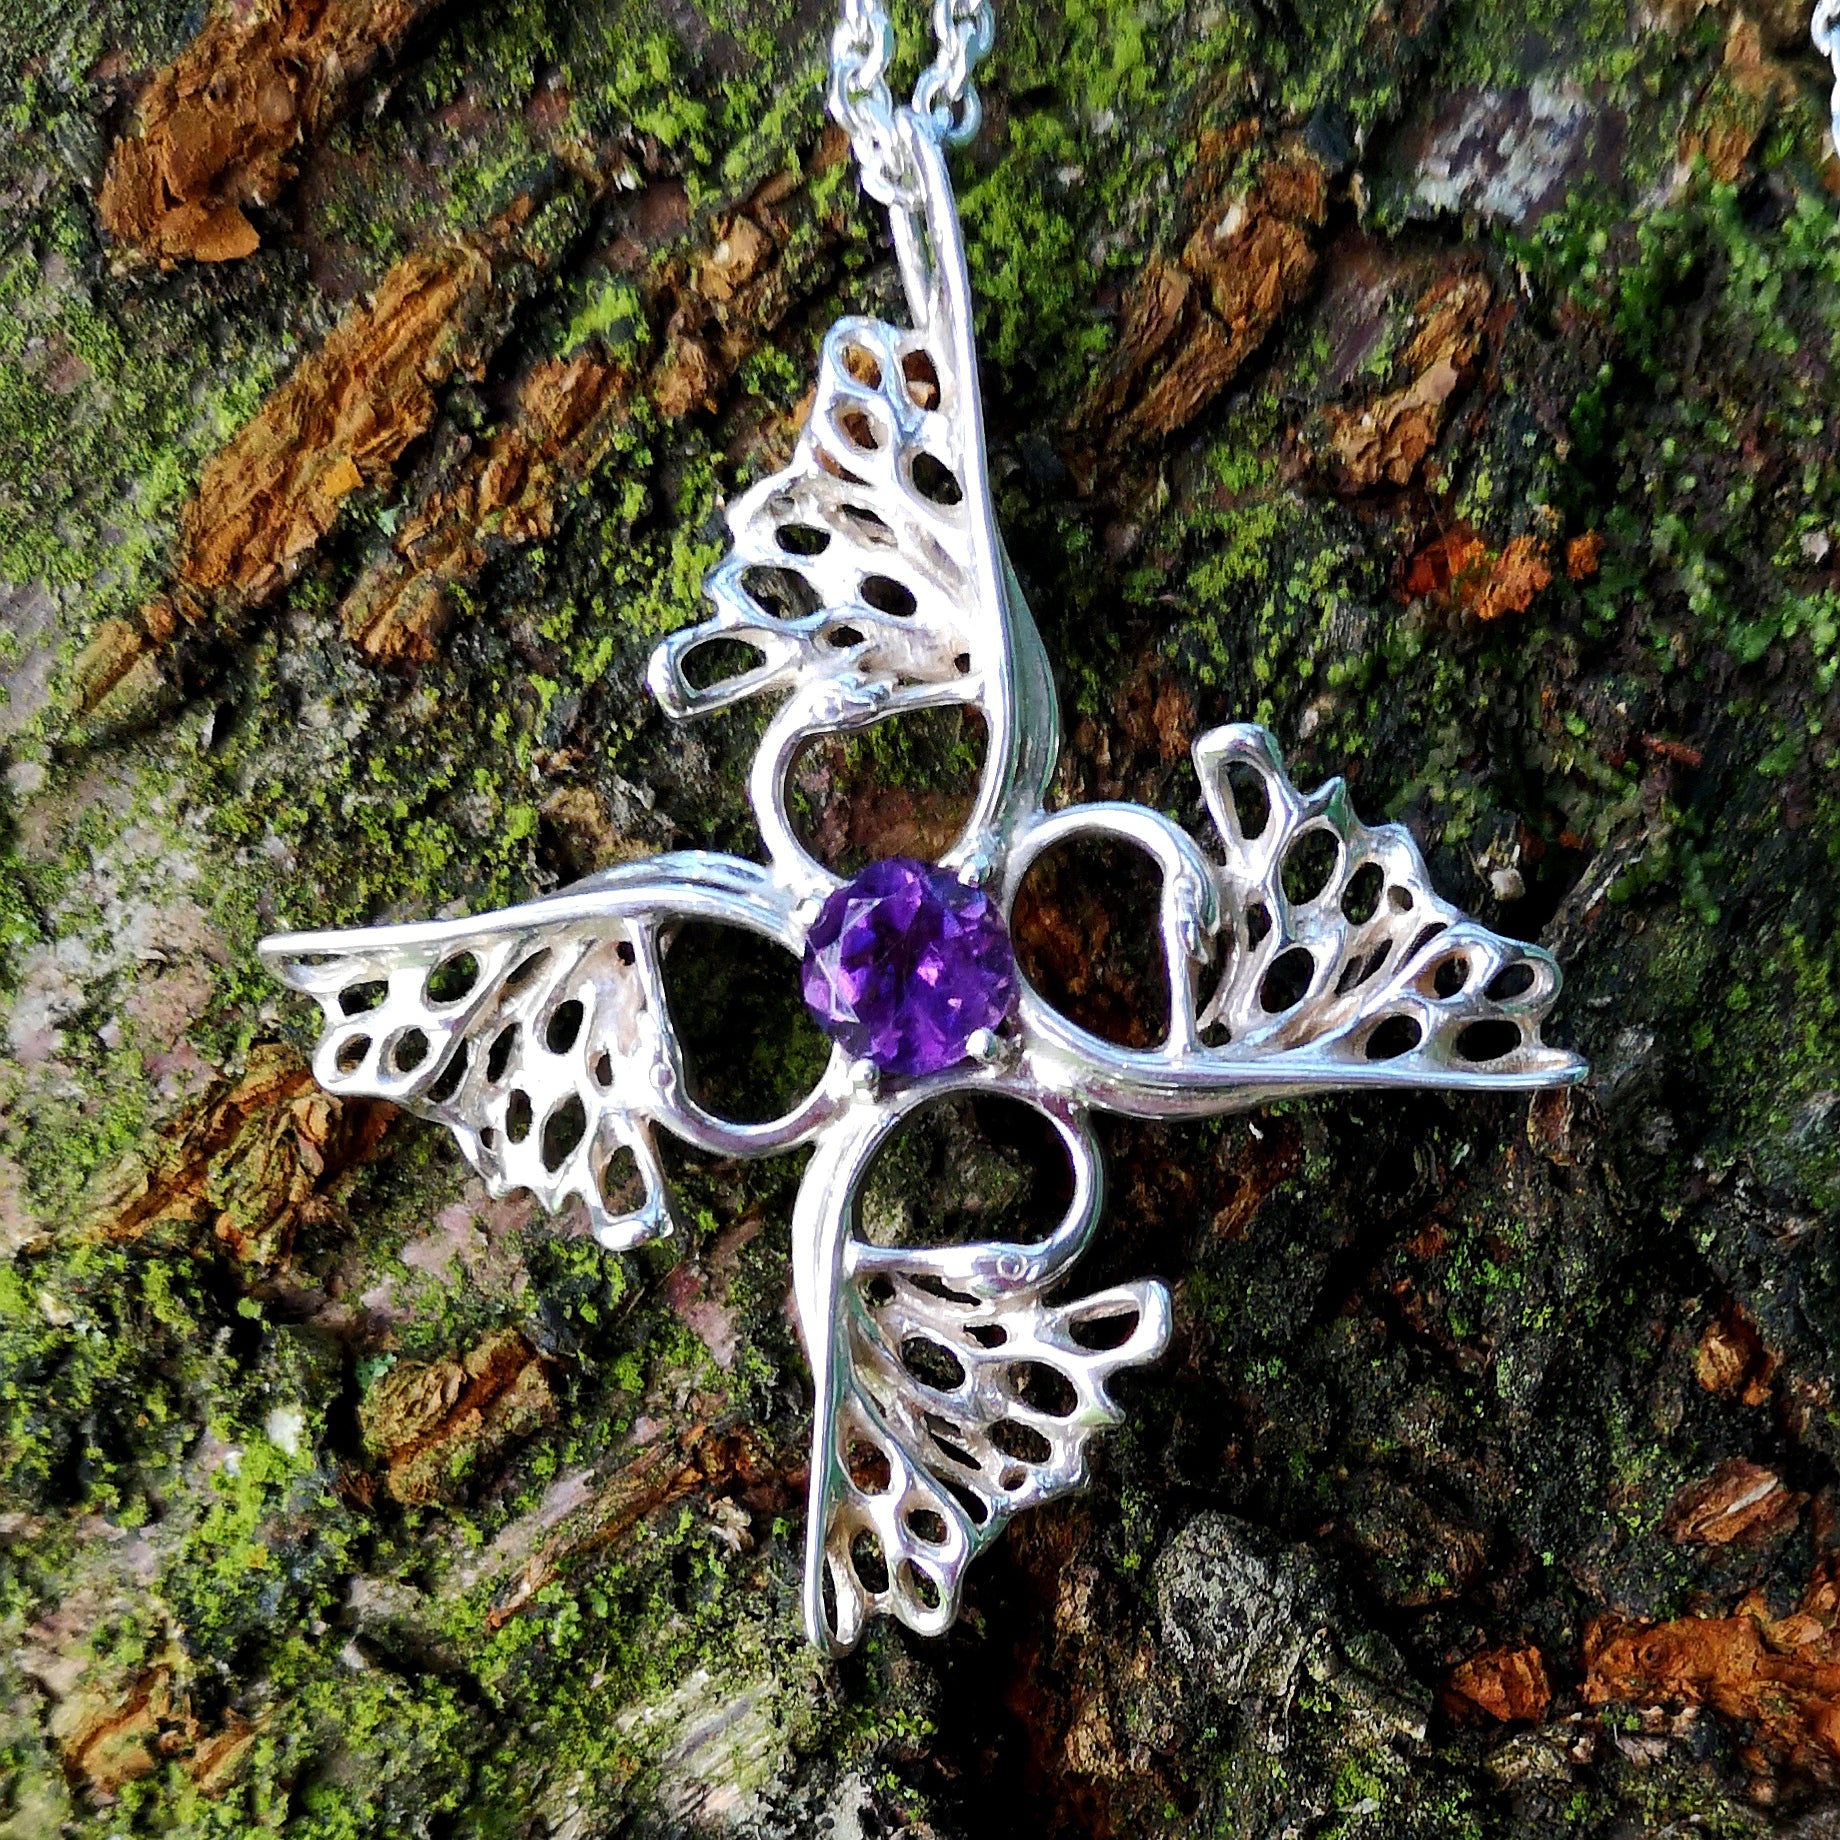 Crusader Children of Lir Cross handcrafted from Sterling Silver with Amethyst gemstone setting.